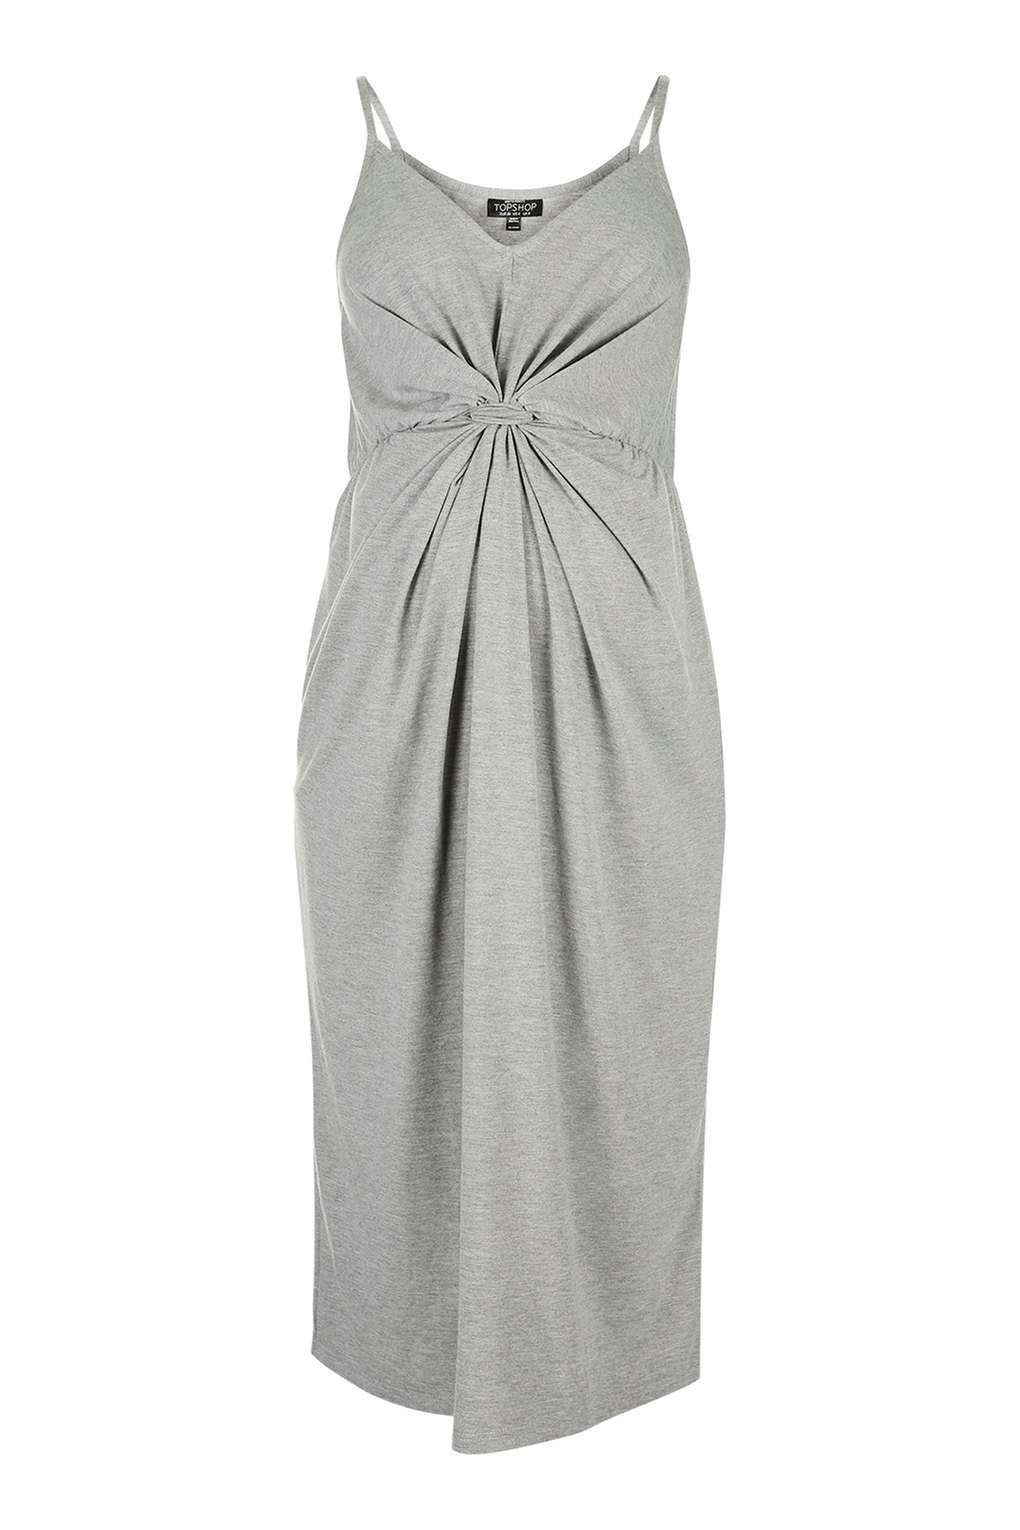 Maternity knot front dress topshop maternity pinterest maternity knot front dress topshop ombrellifo Gallery